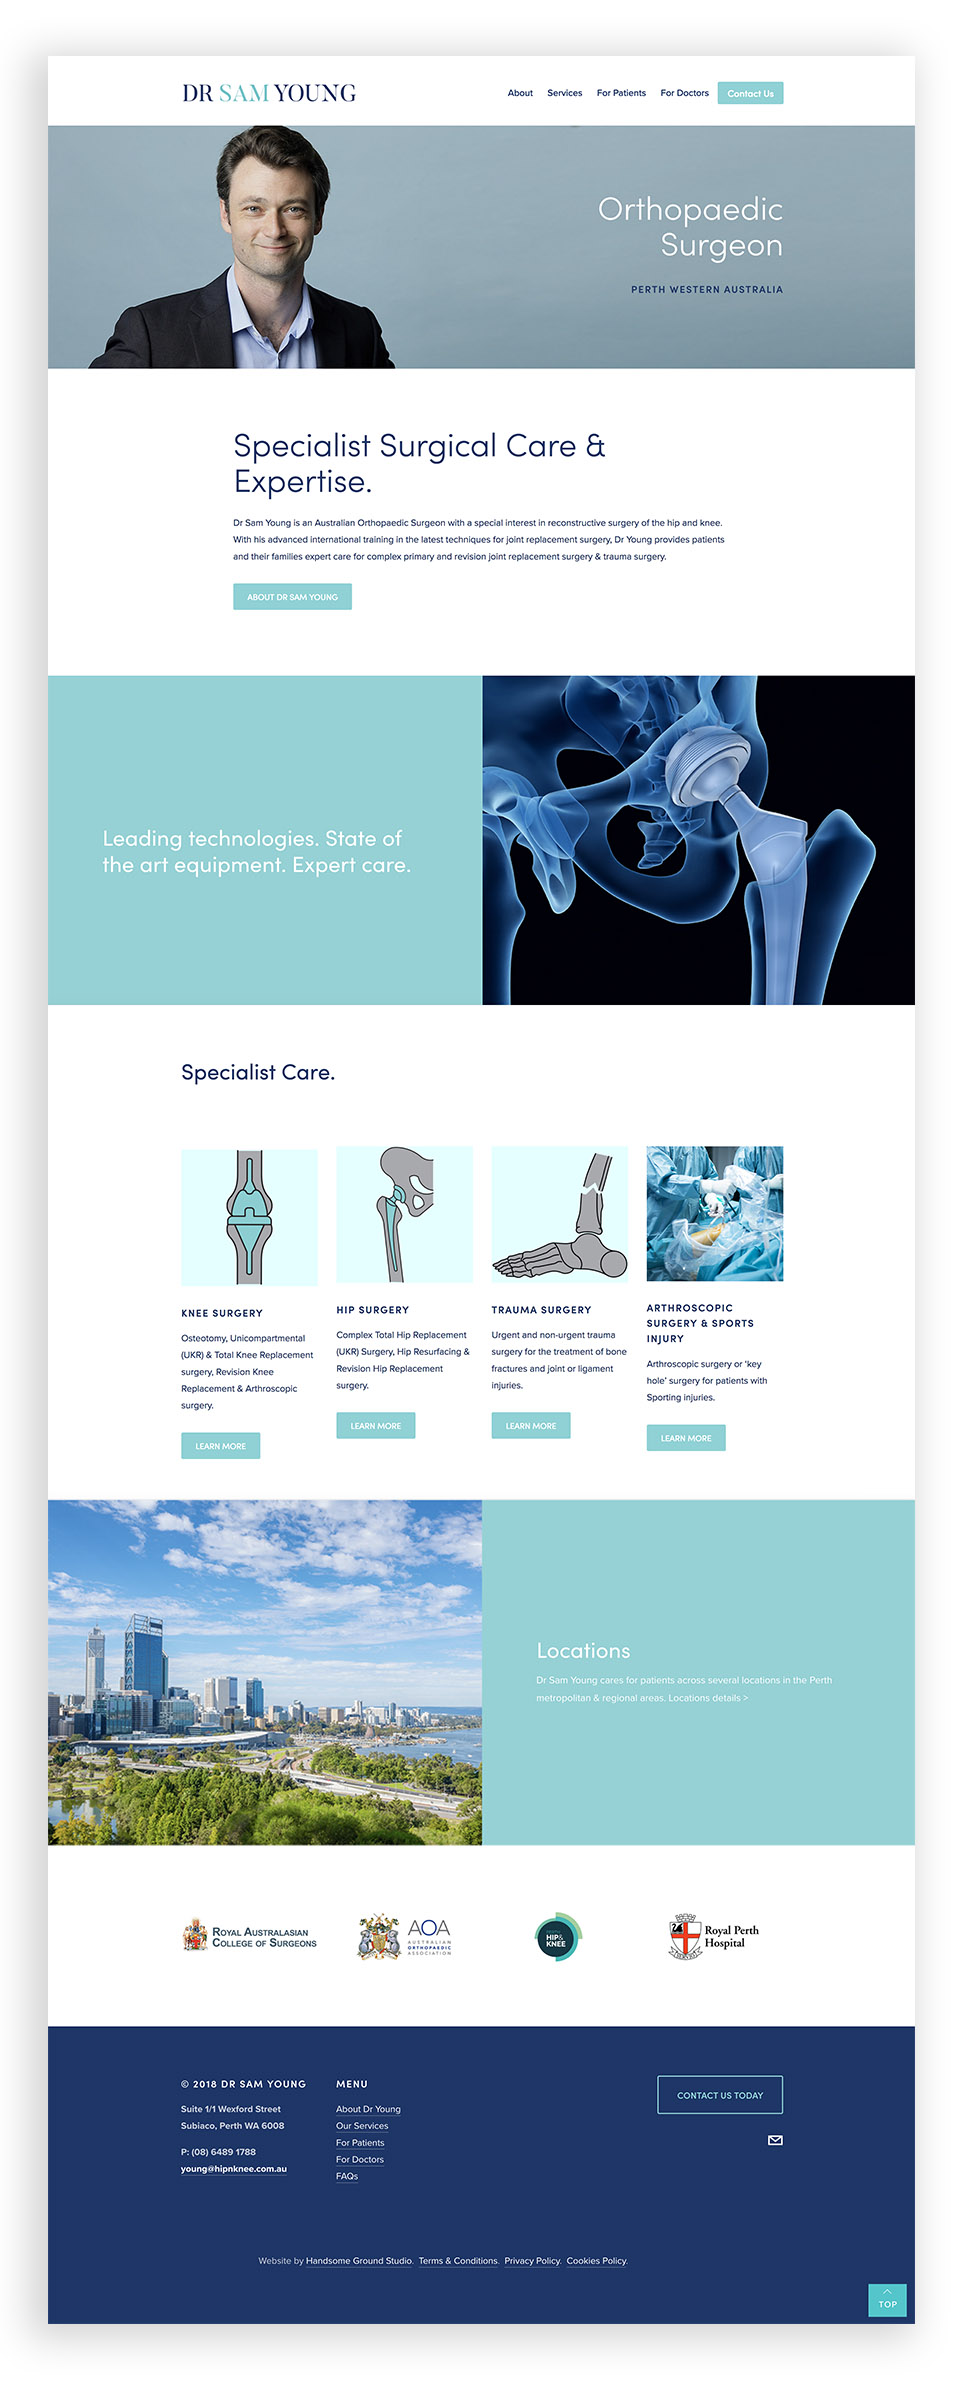 Website Design & Branding for Orthopaedic Surgeon